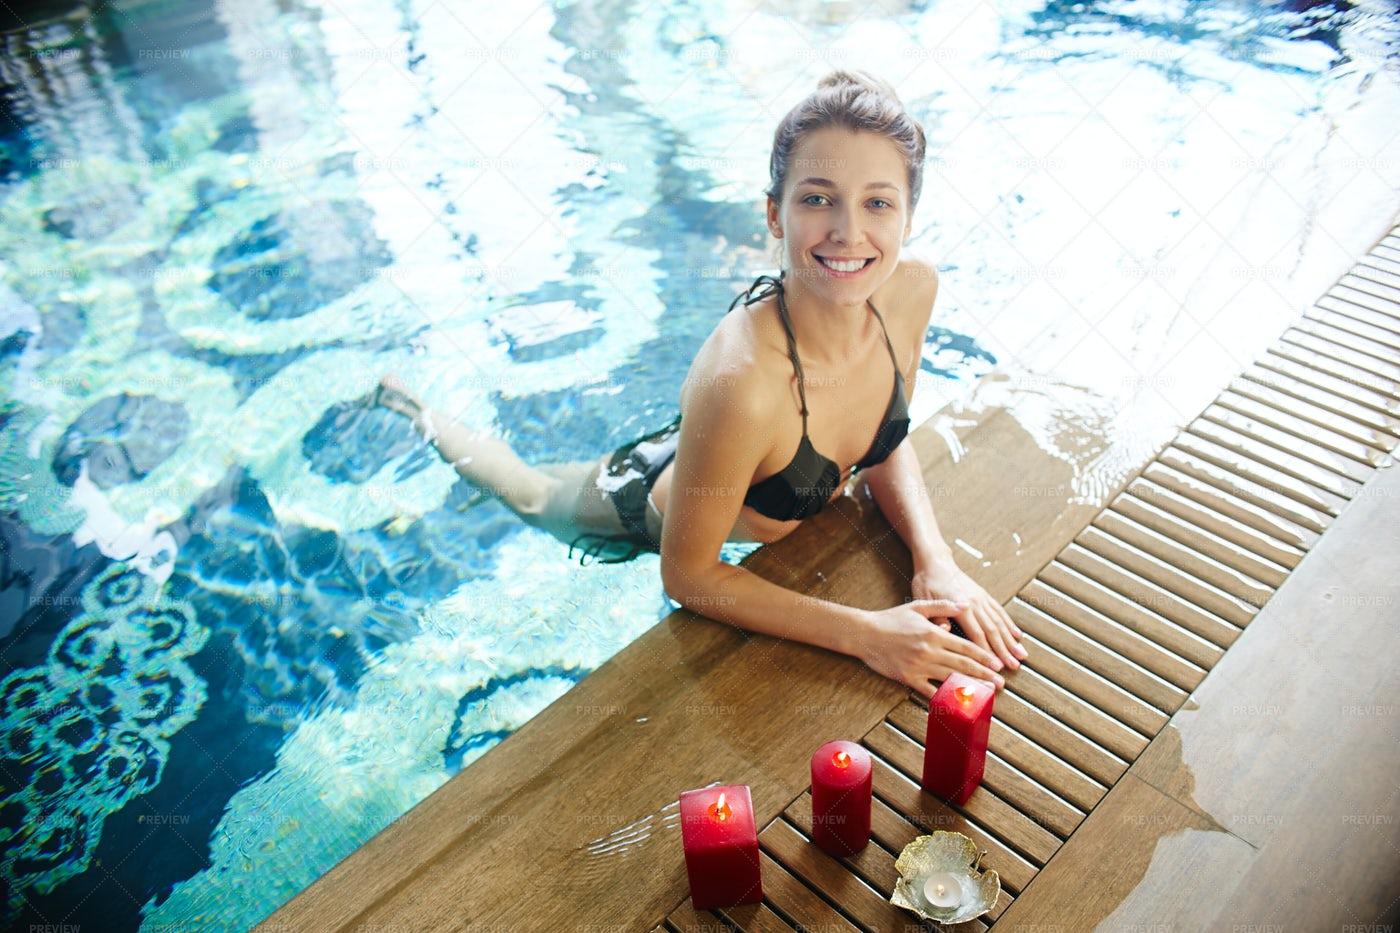 Young Woman Swimming In Pool: Stock Photos